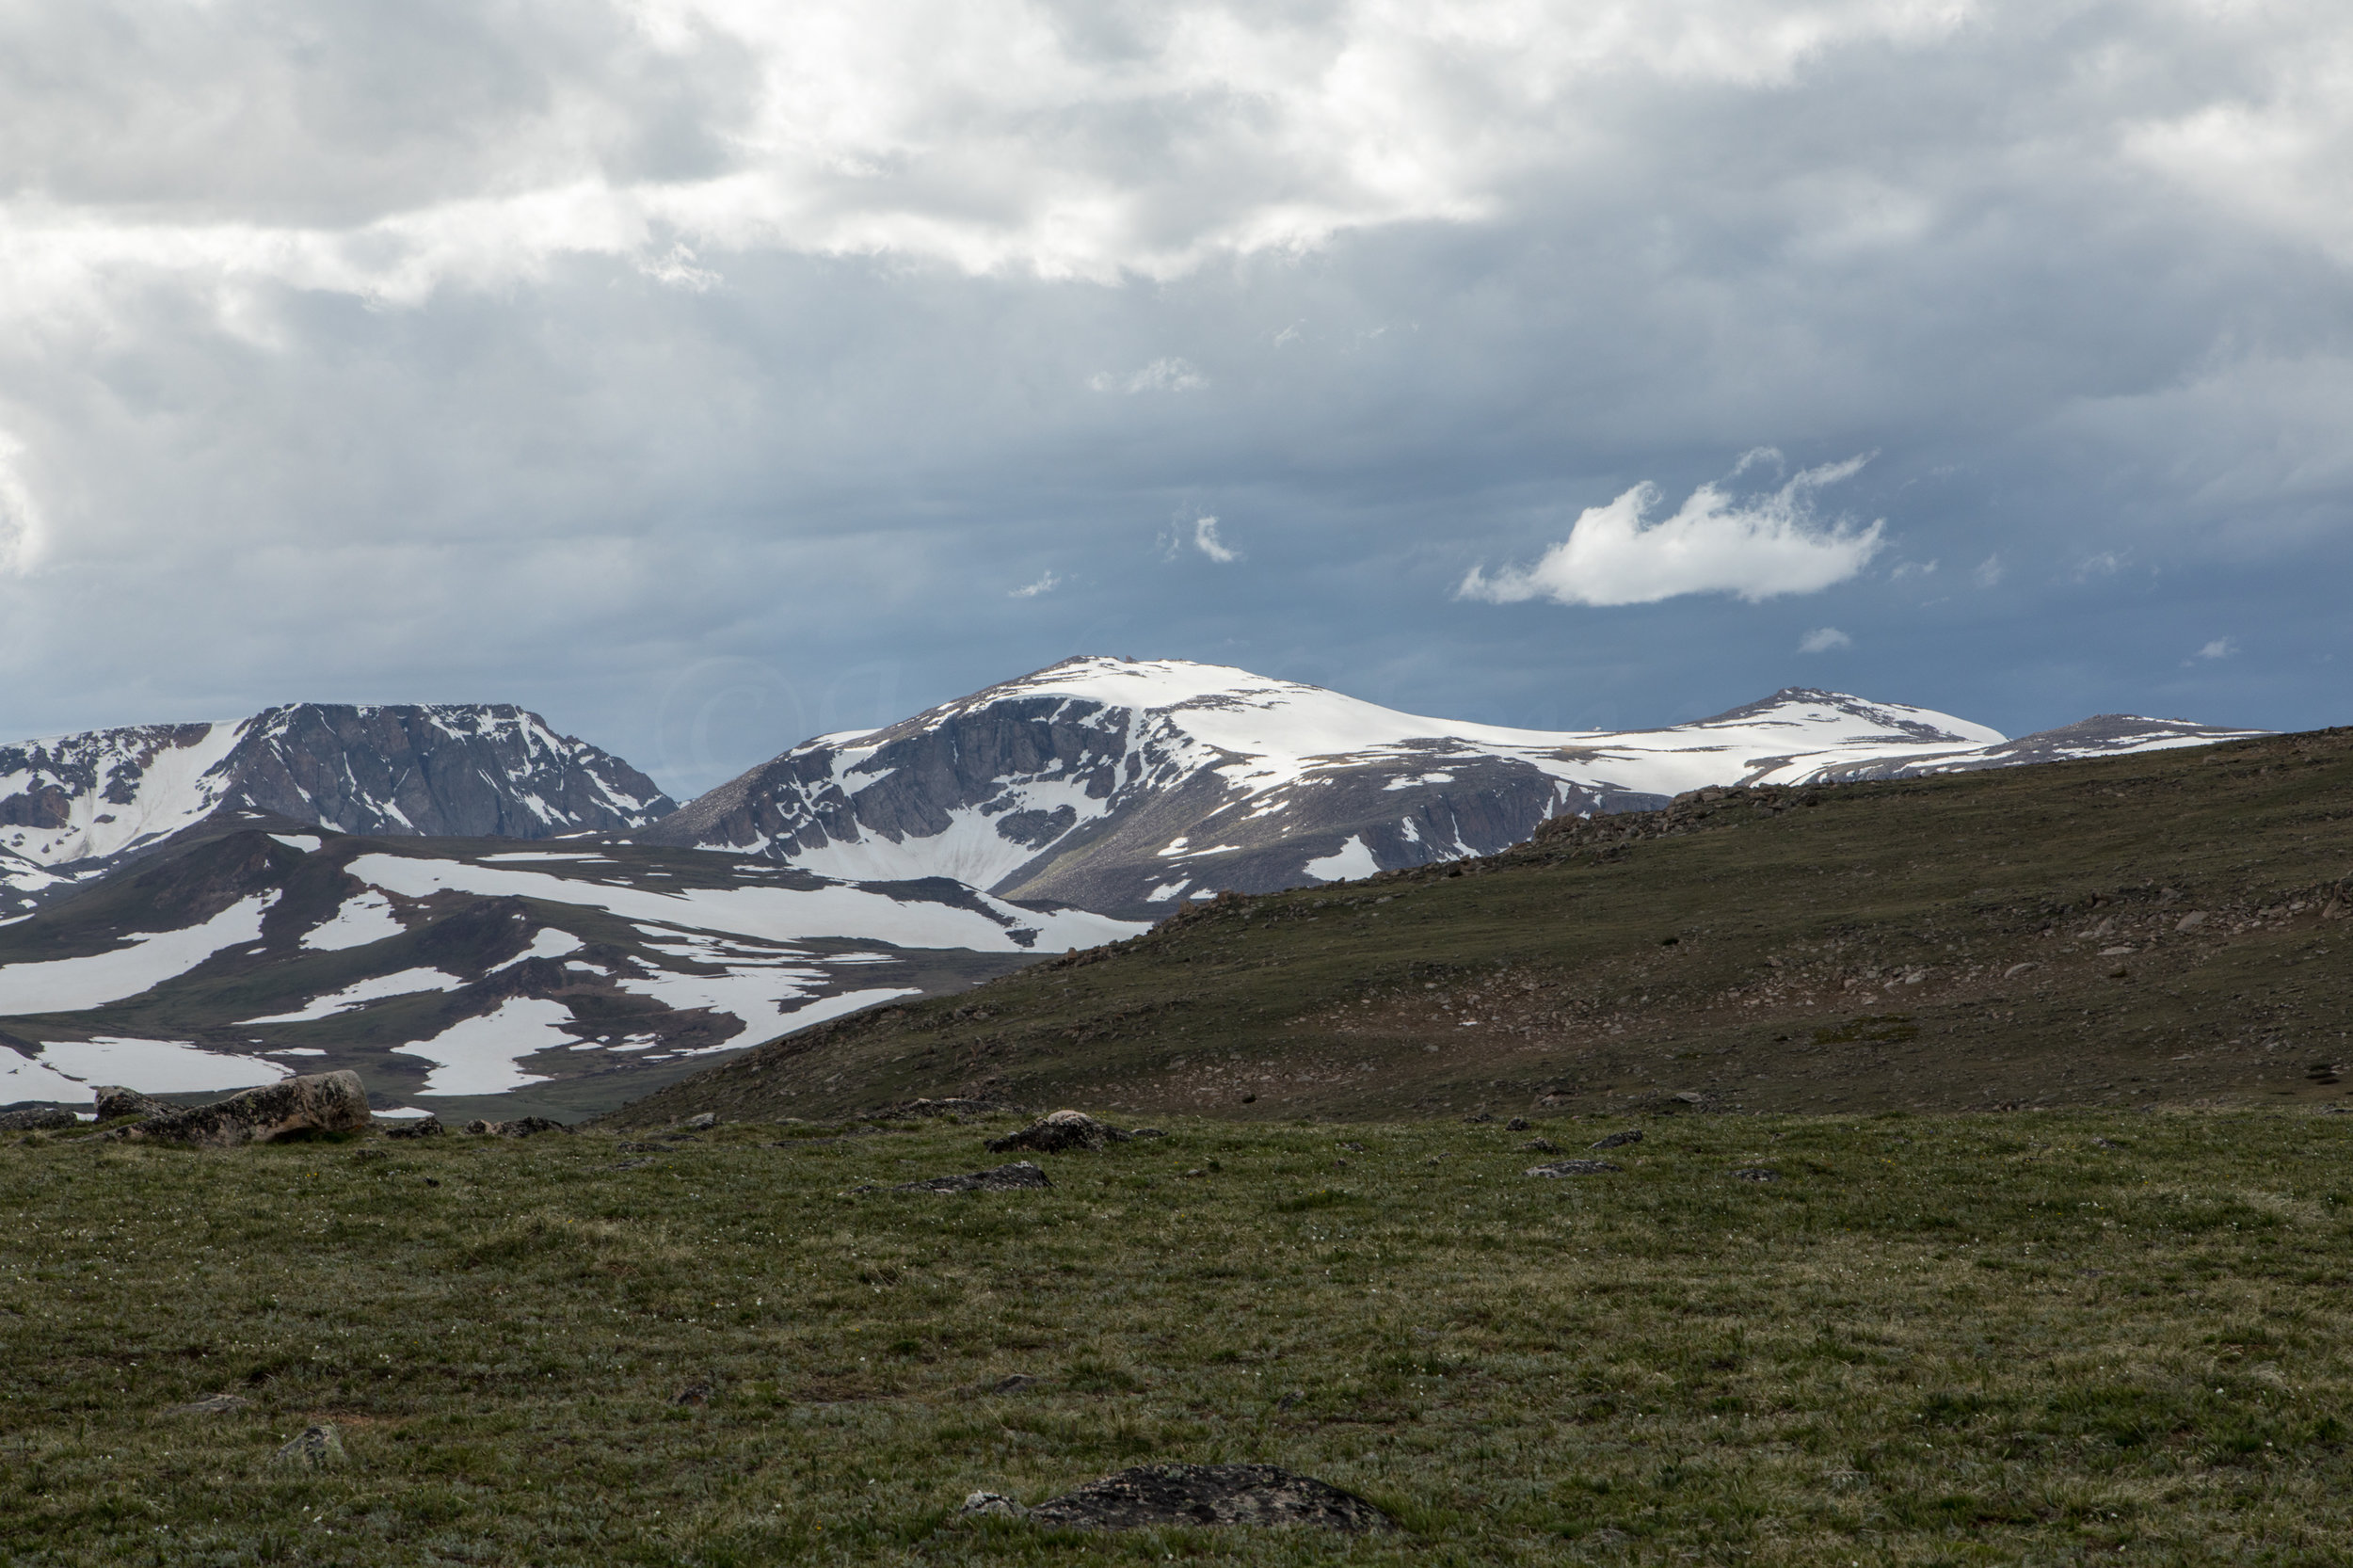 Mountain Views along Beartooth Highway, Image # 6508